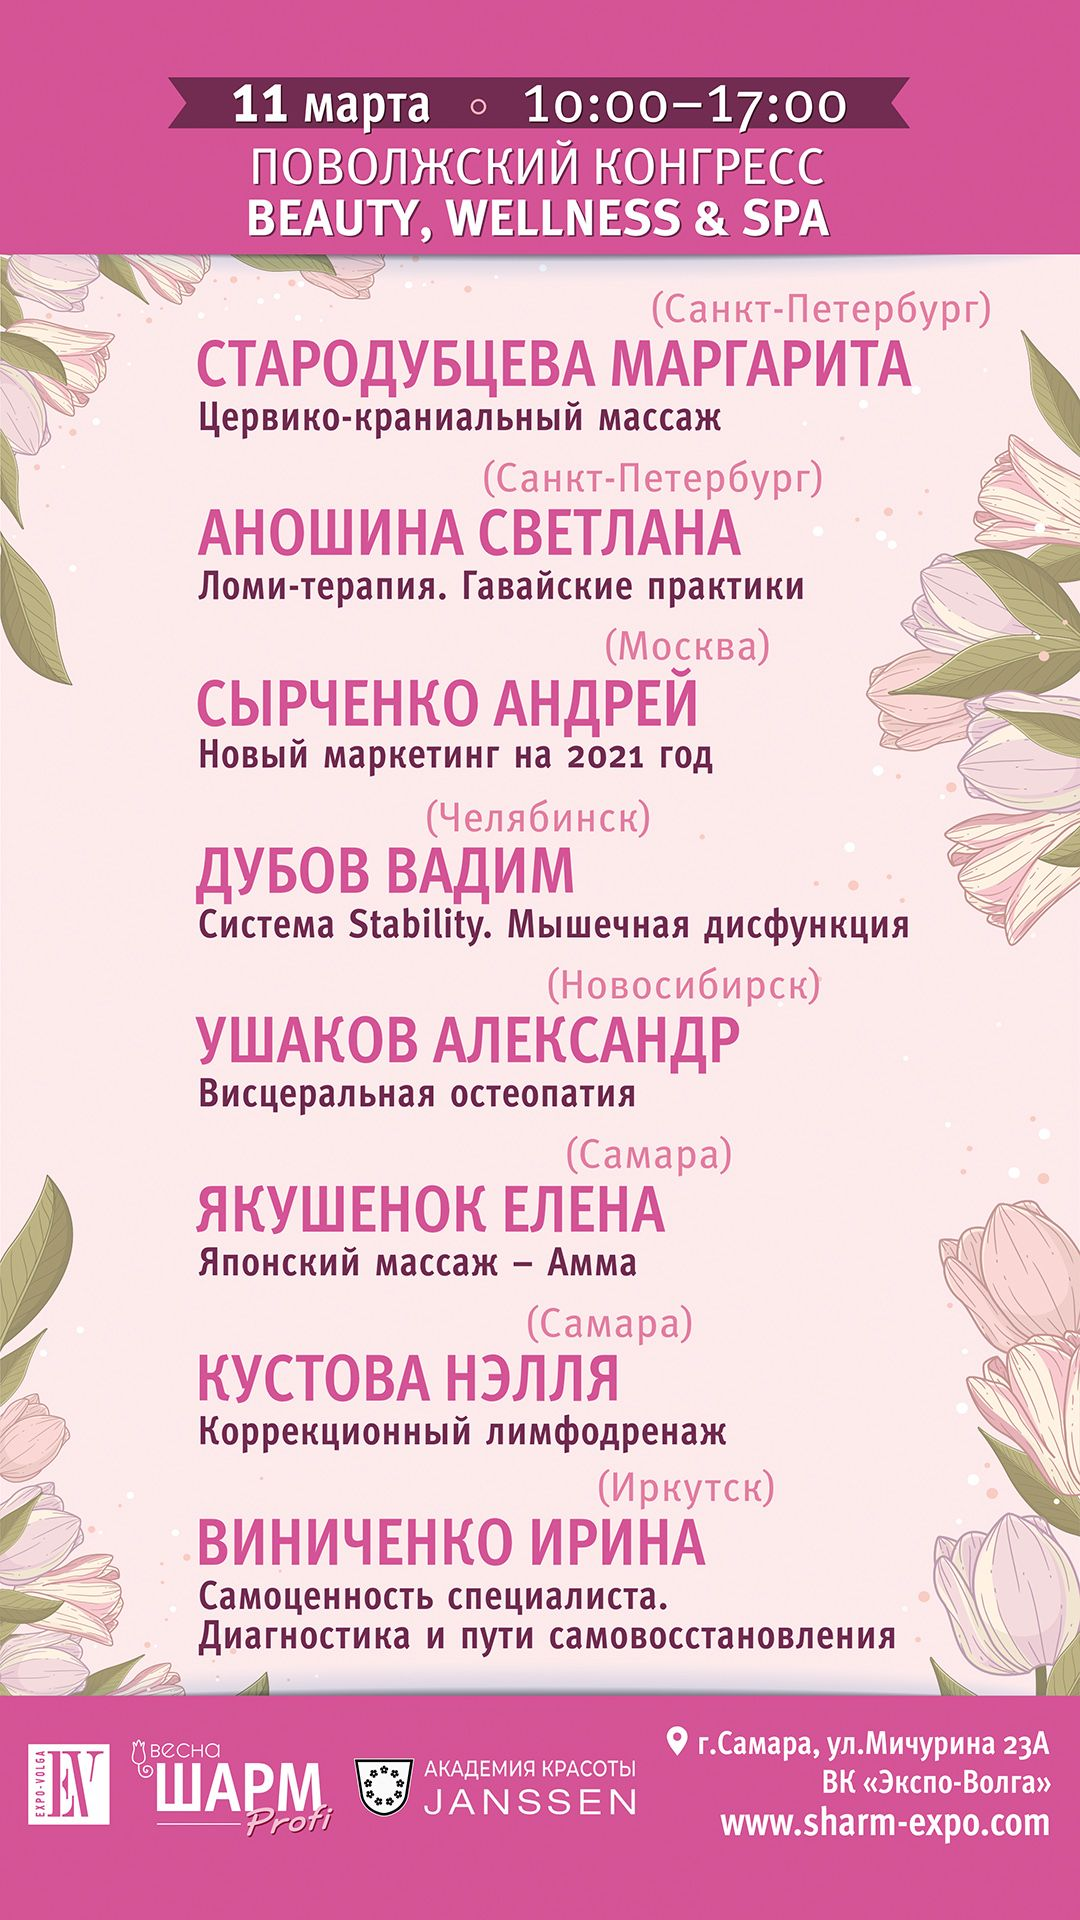 Конгресс Beauty, Wellness & Spa 11 марта 2021